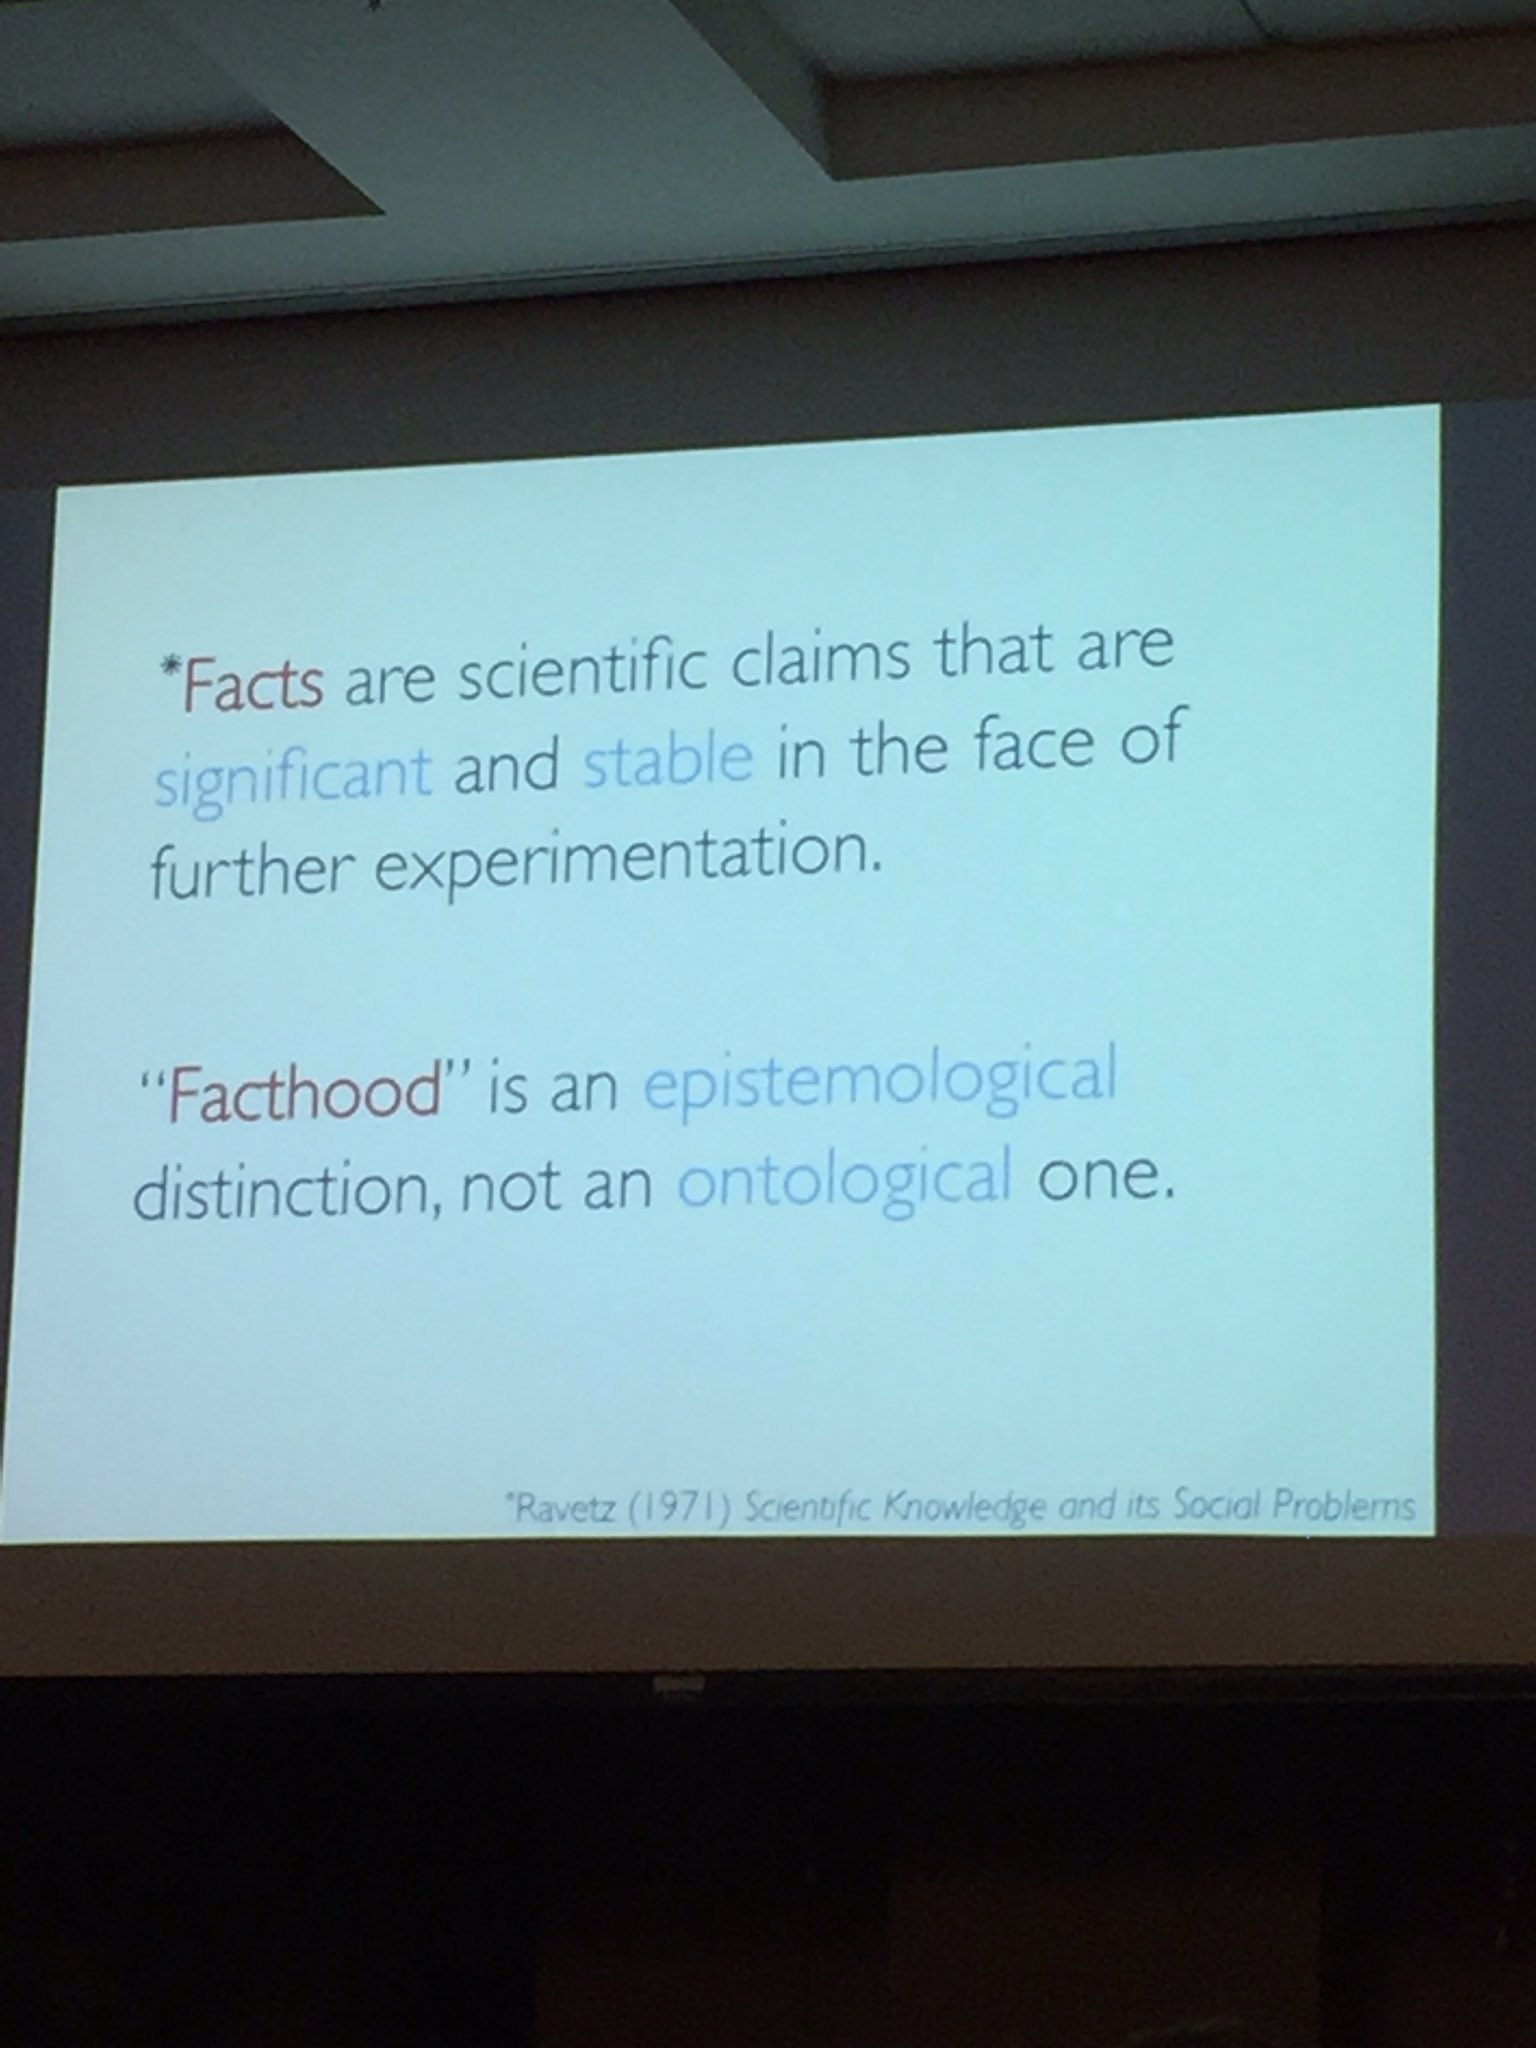 #FactsAreReal #CallingBS from Carl Bergstrom of UW @nswa https://t.co/sBTGWc65wS